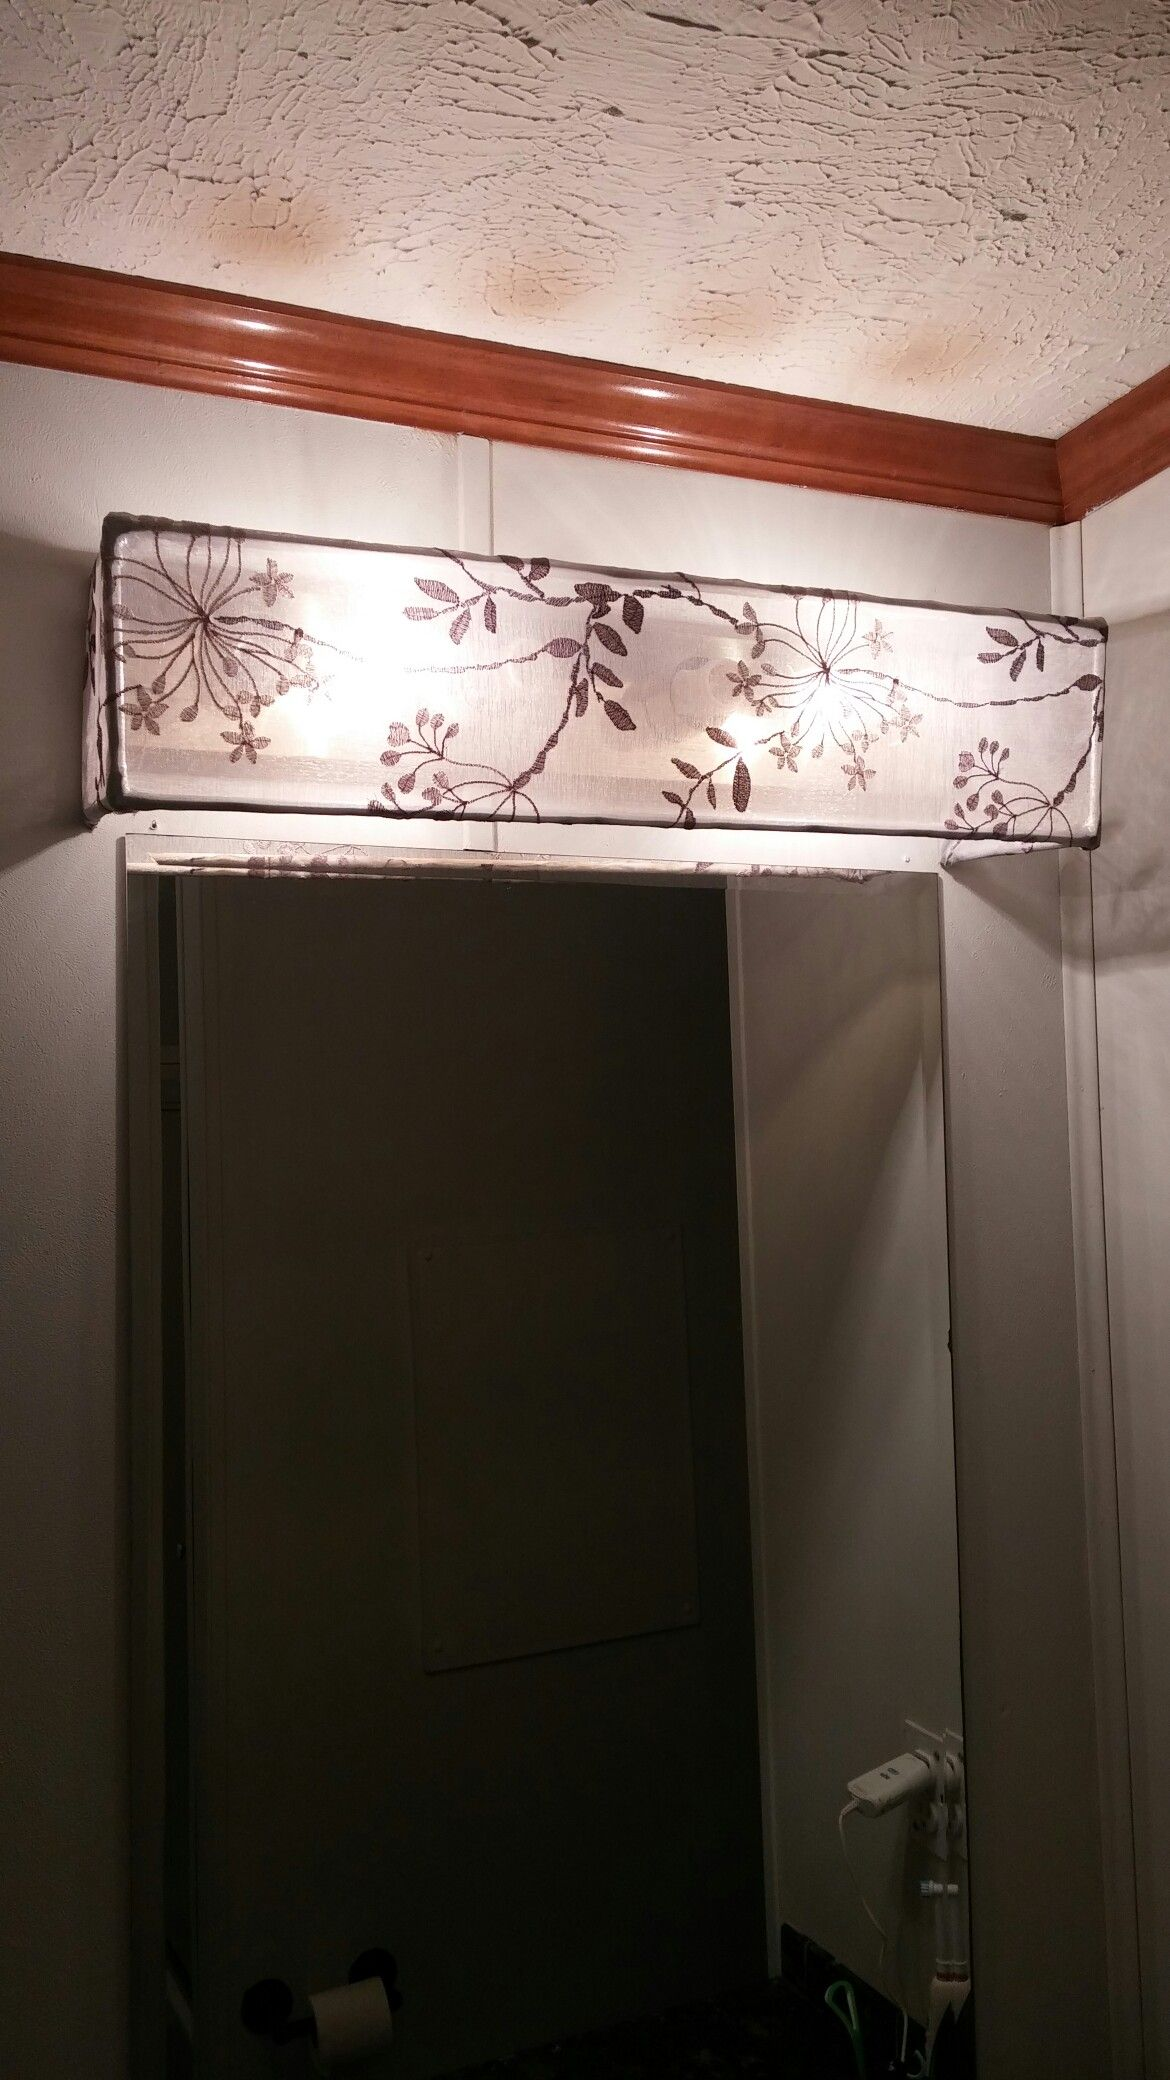 Replace Hollywood Lights Bathroom - Diy vanity light shade dowel rods and a curtain sheer hot glued and hung over existing